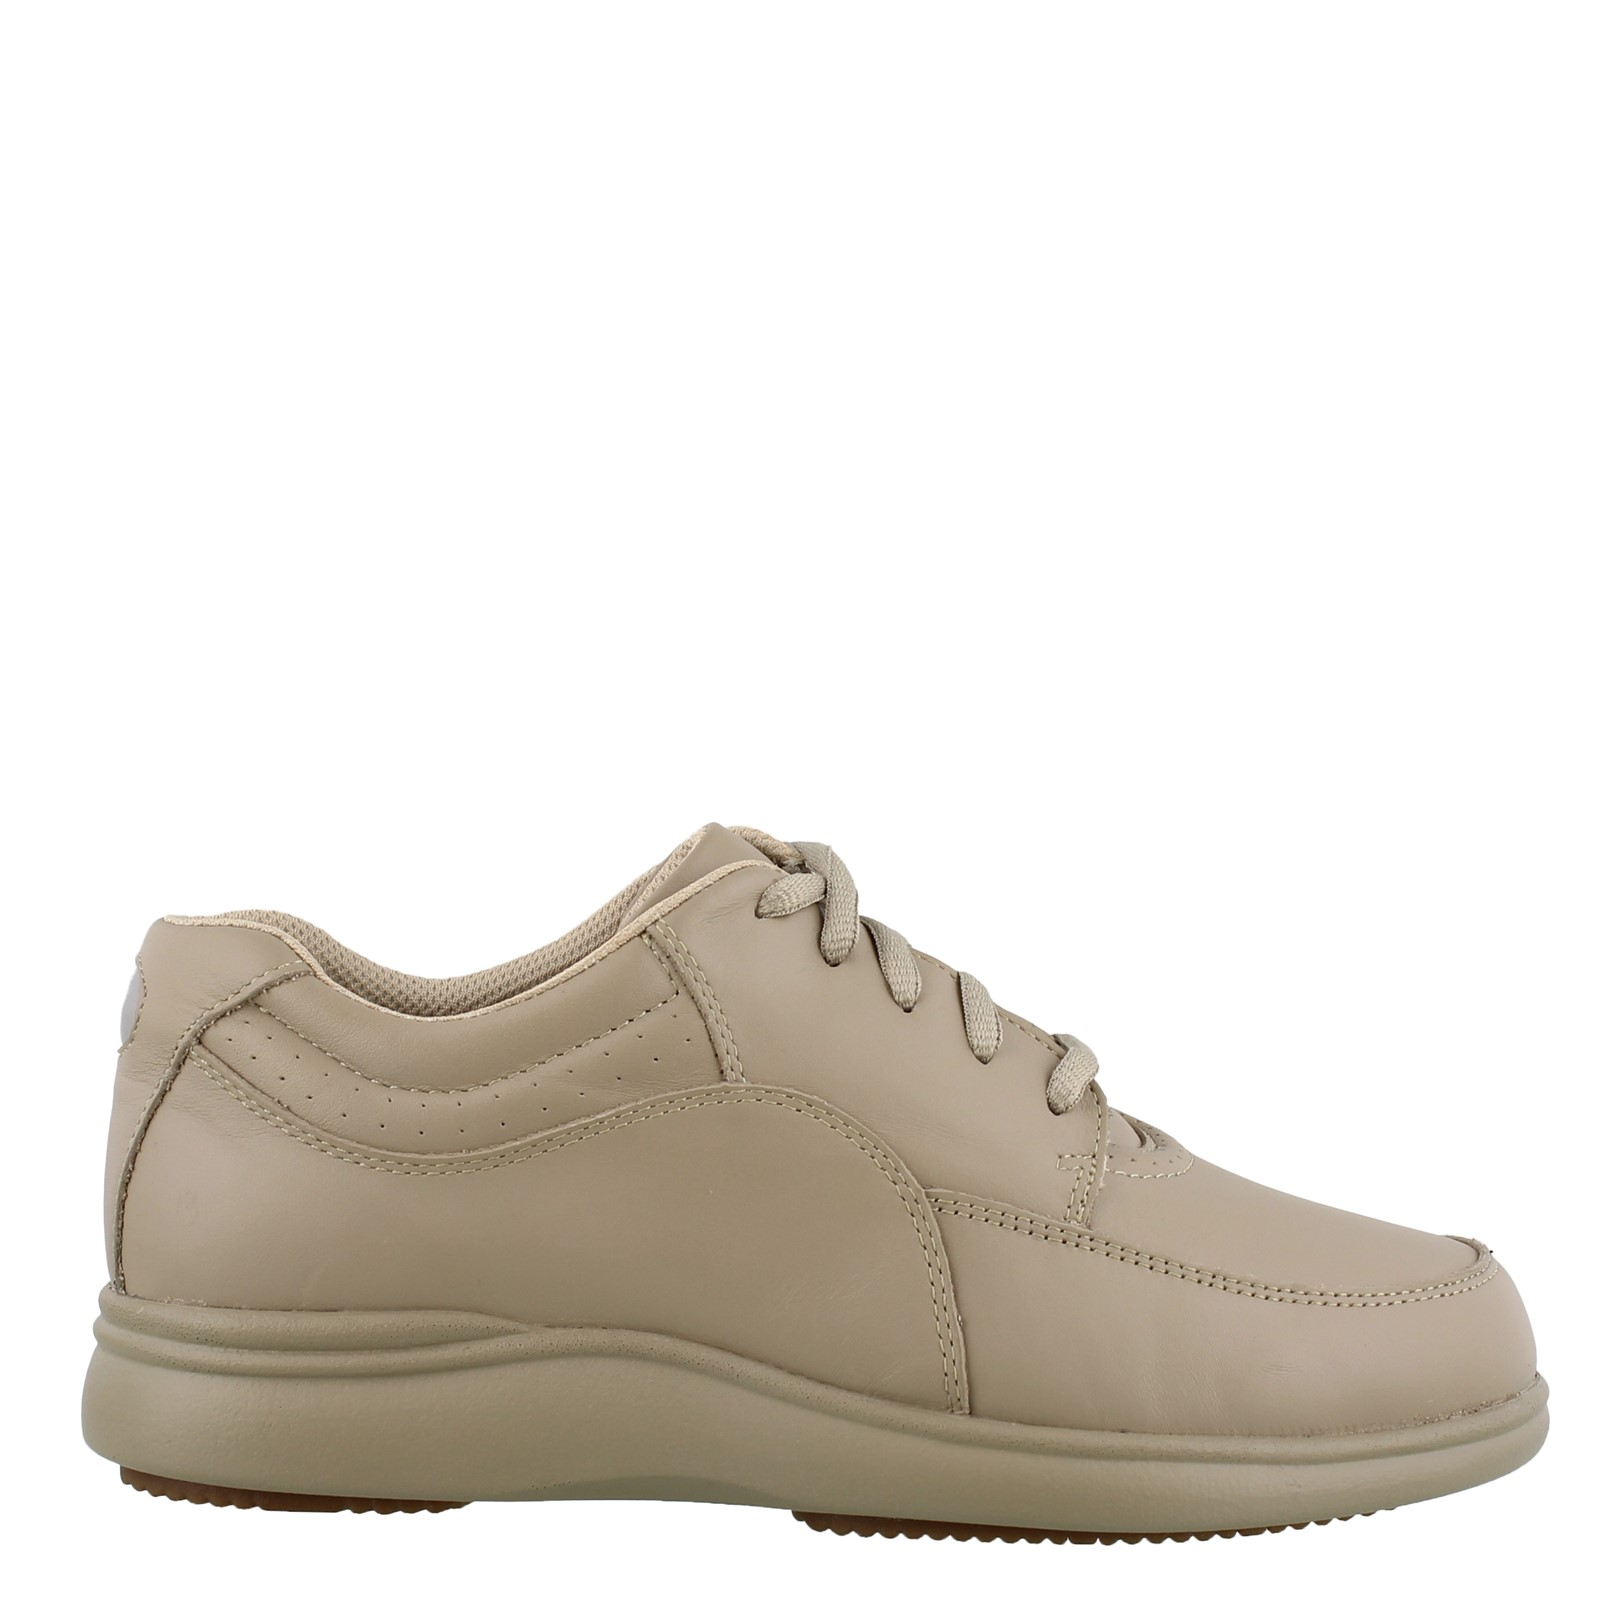 Women's Hush Puppies, Power Walker Sneaker